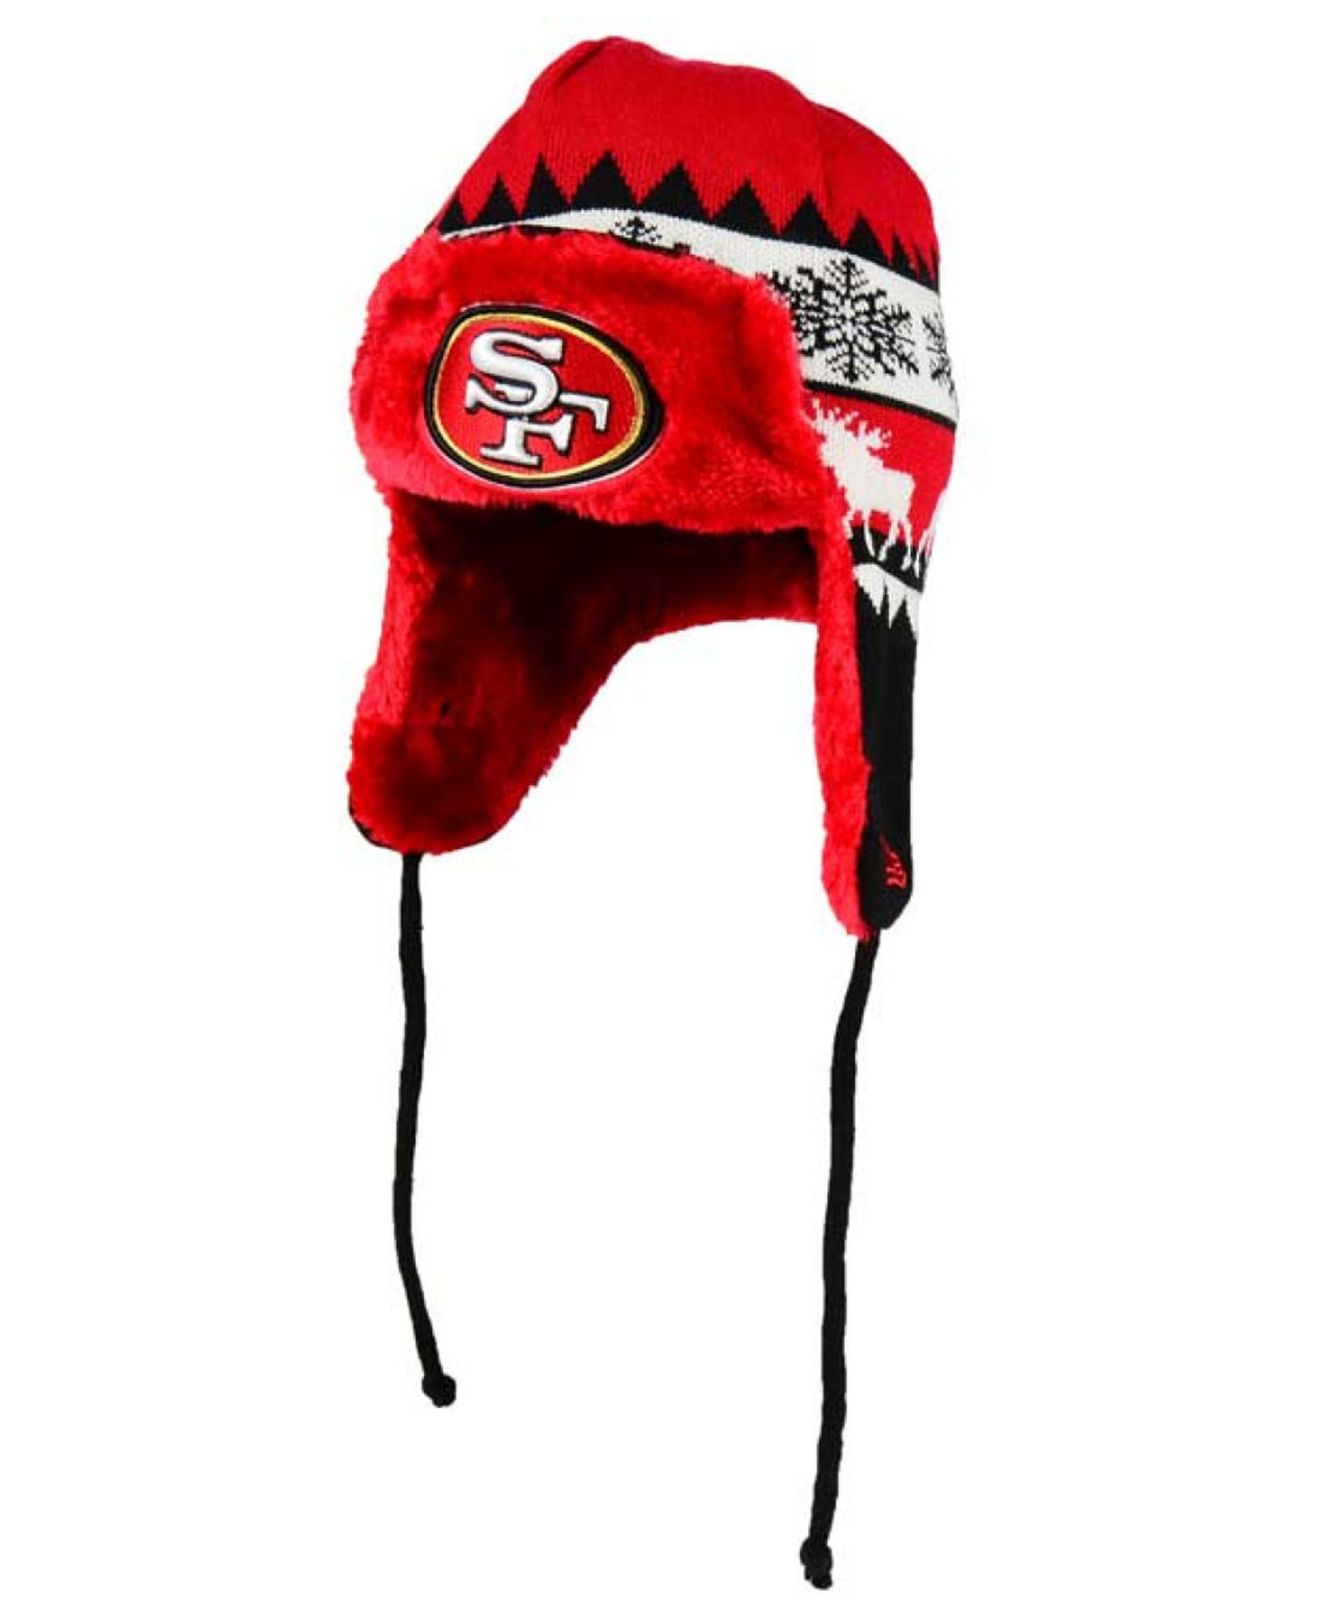 Lyst - KTZ San Francisco 49ers Moose Trapper Knit Hat in Red for Men 5aeeb4afef99